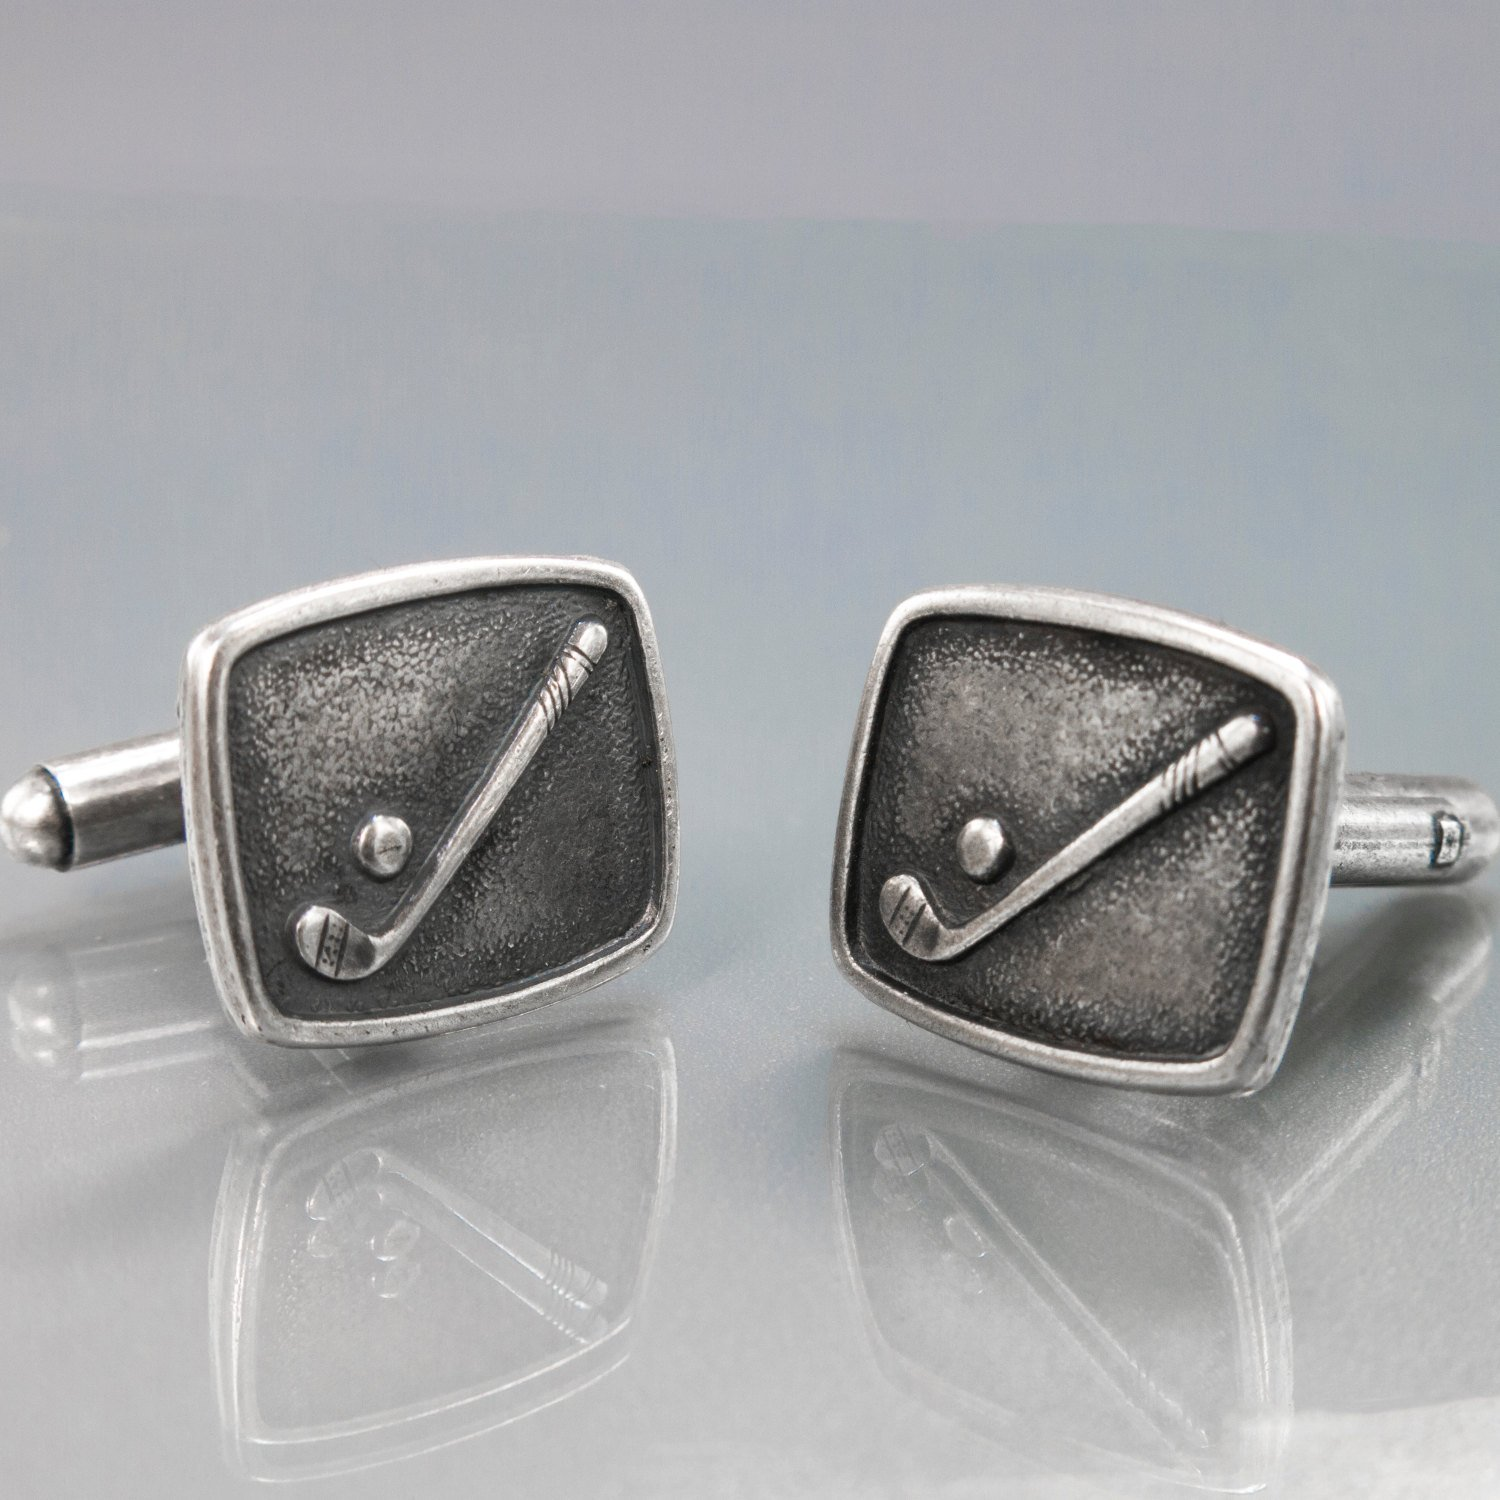 Men's Cufflinks - Men's Accessories - Men's Jewelry - Men's Gift - Cufflinks For Men